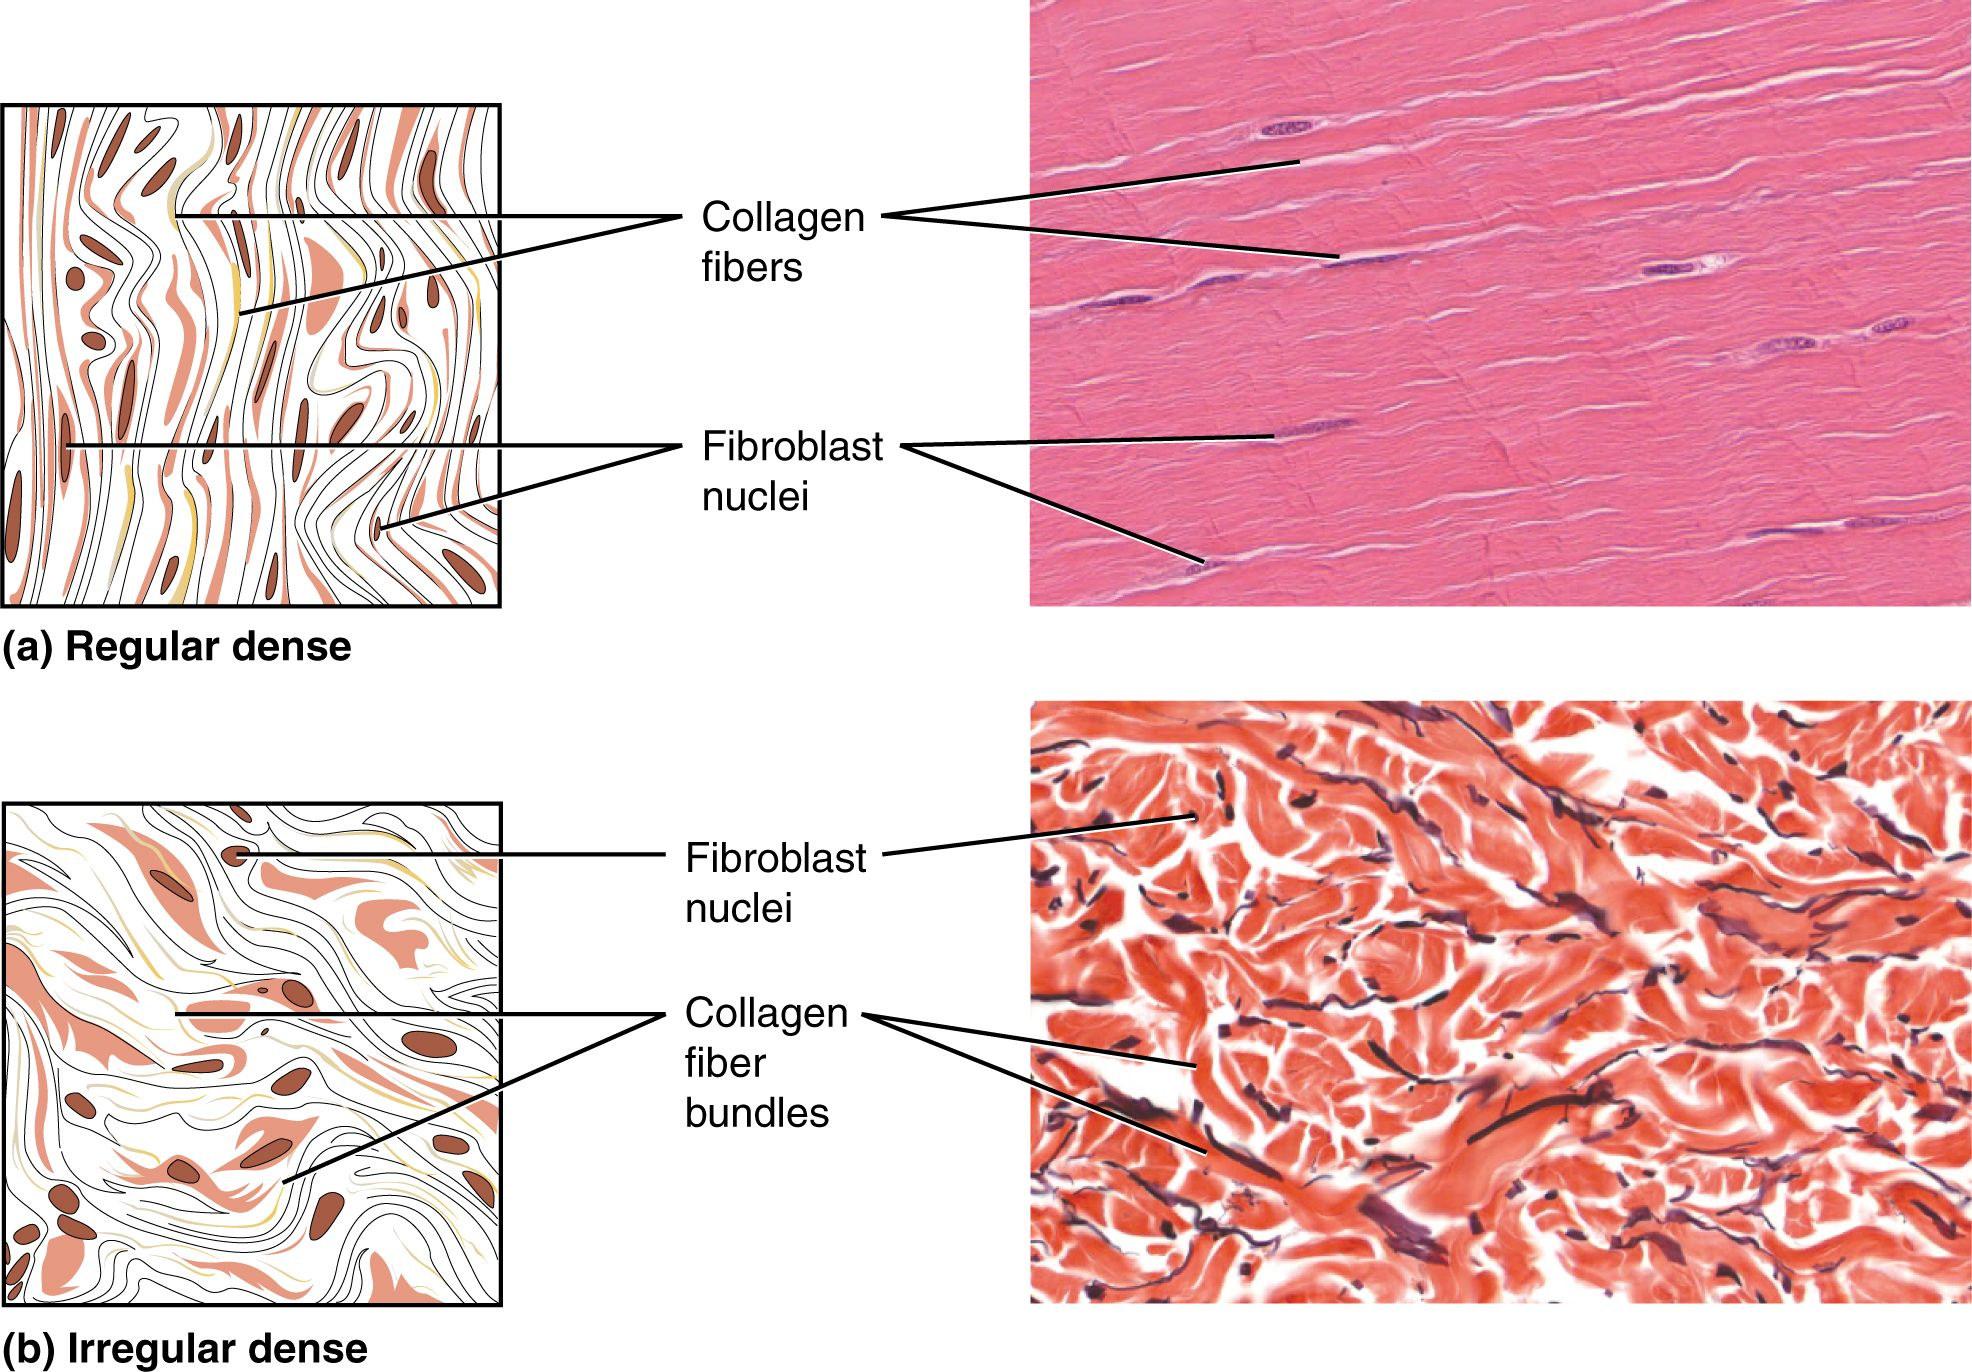 hight resolution of part a shows a diagram of regular dense connective tissue alongside a micrograph the tissue